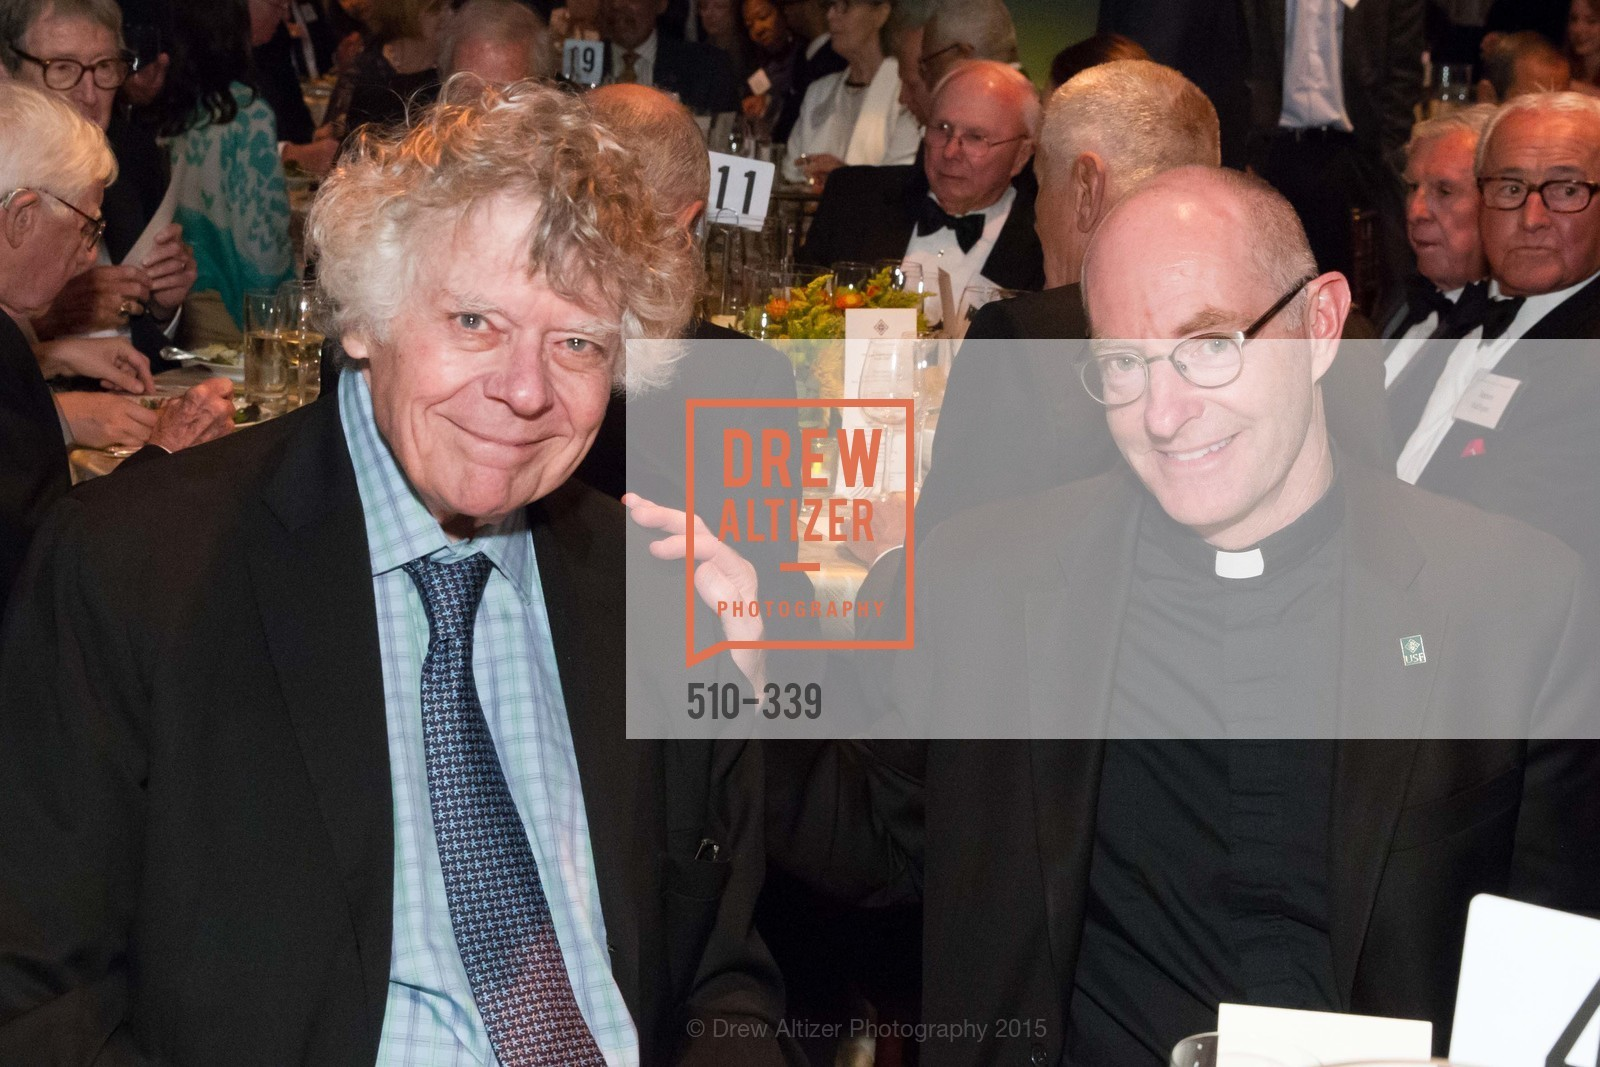 Gordon Getty, Paul Fitzgerald, University of San Francisco Alumni Awards Gala 2015, University of San Francisco, October 2nd, 2015,Drew Altizer, Drew Altizer Photography, full-service agency, private events, San Francisco photographer, photographer california